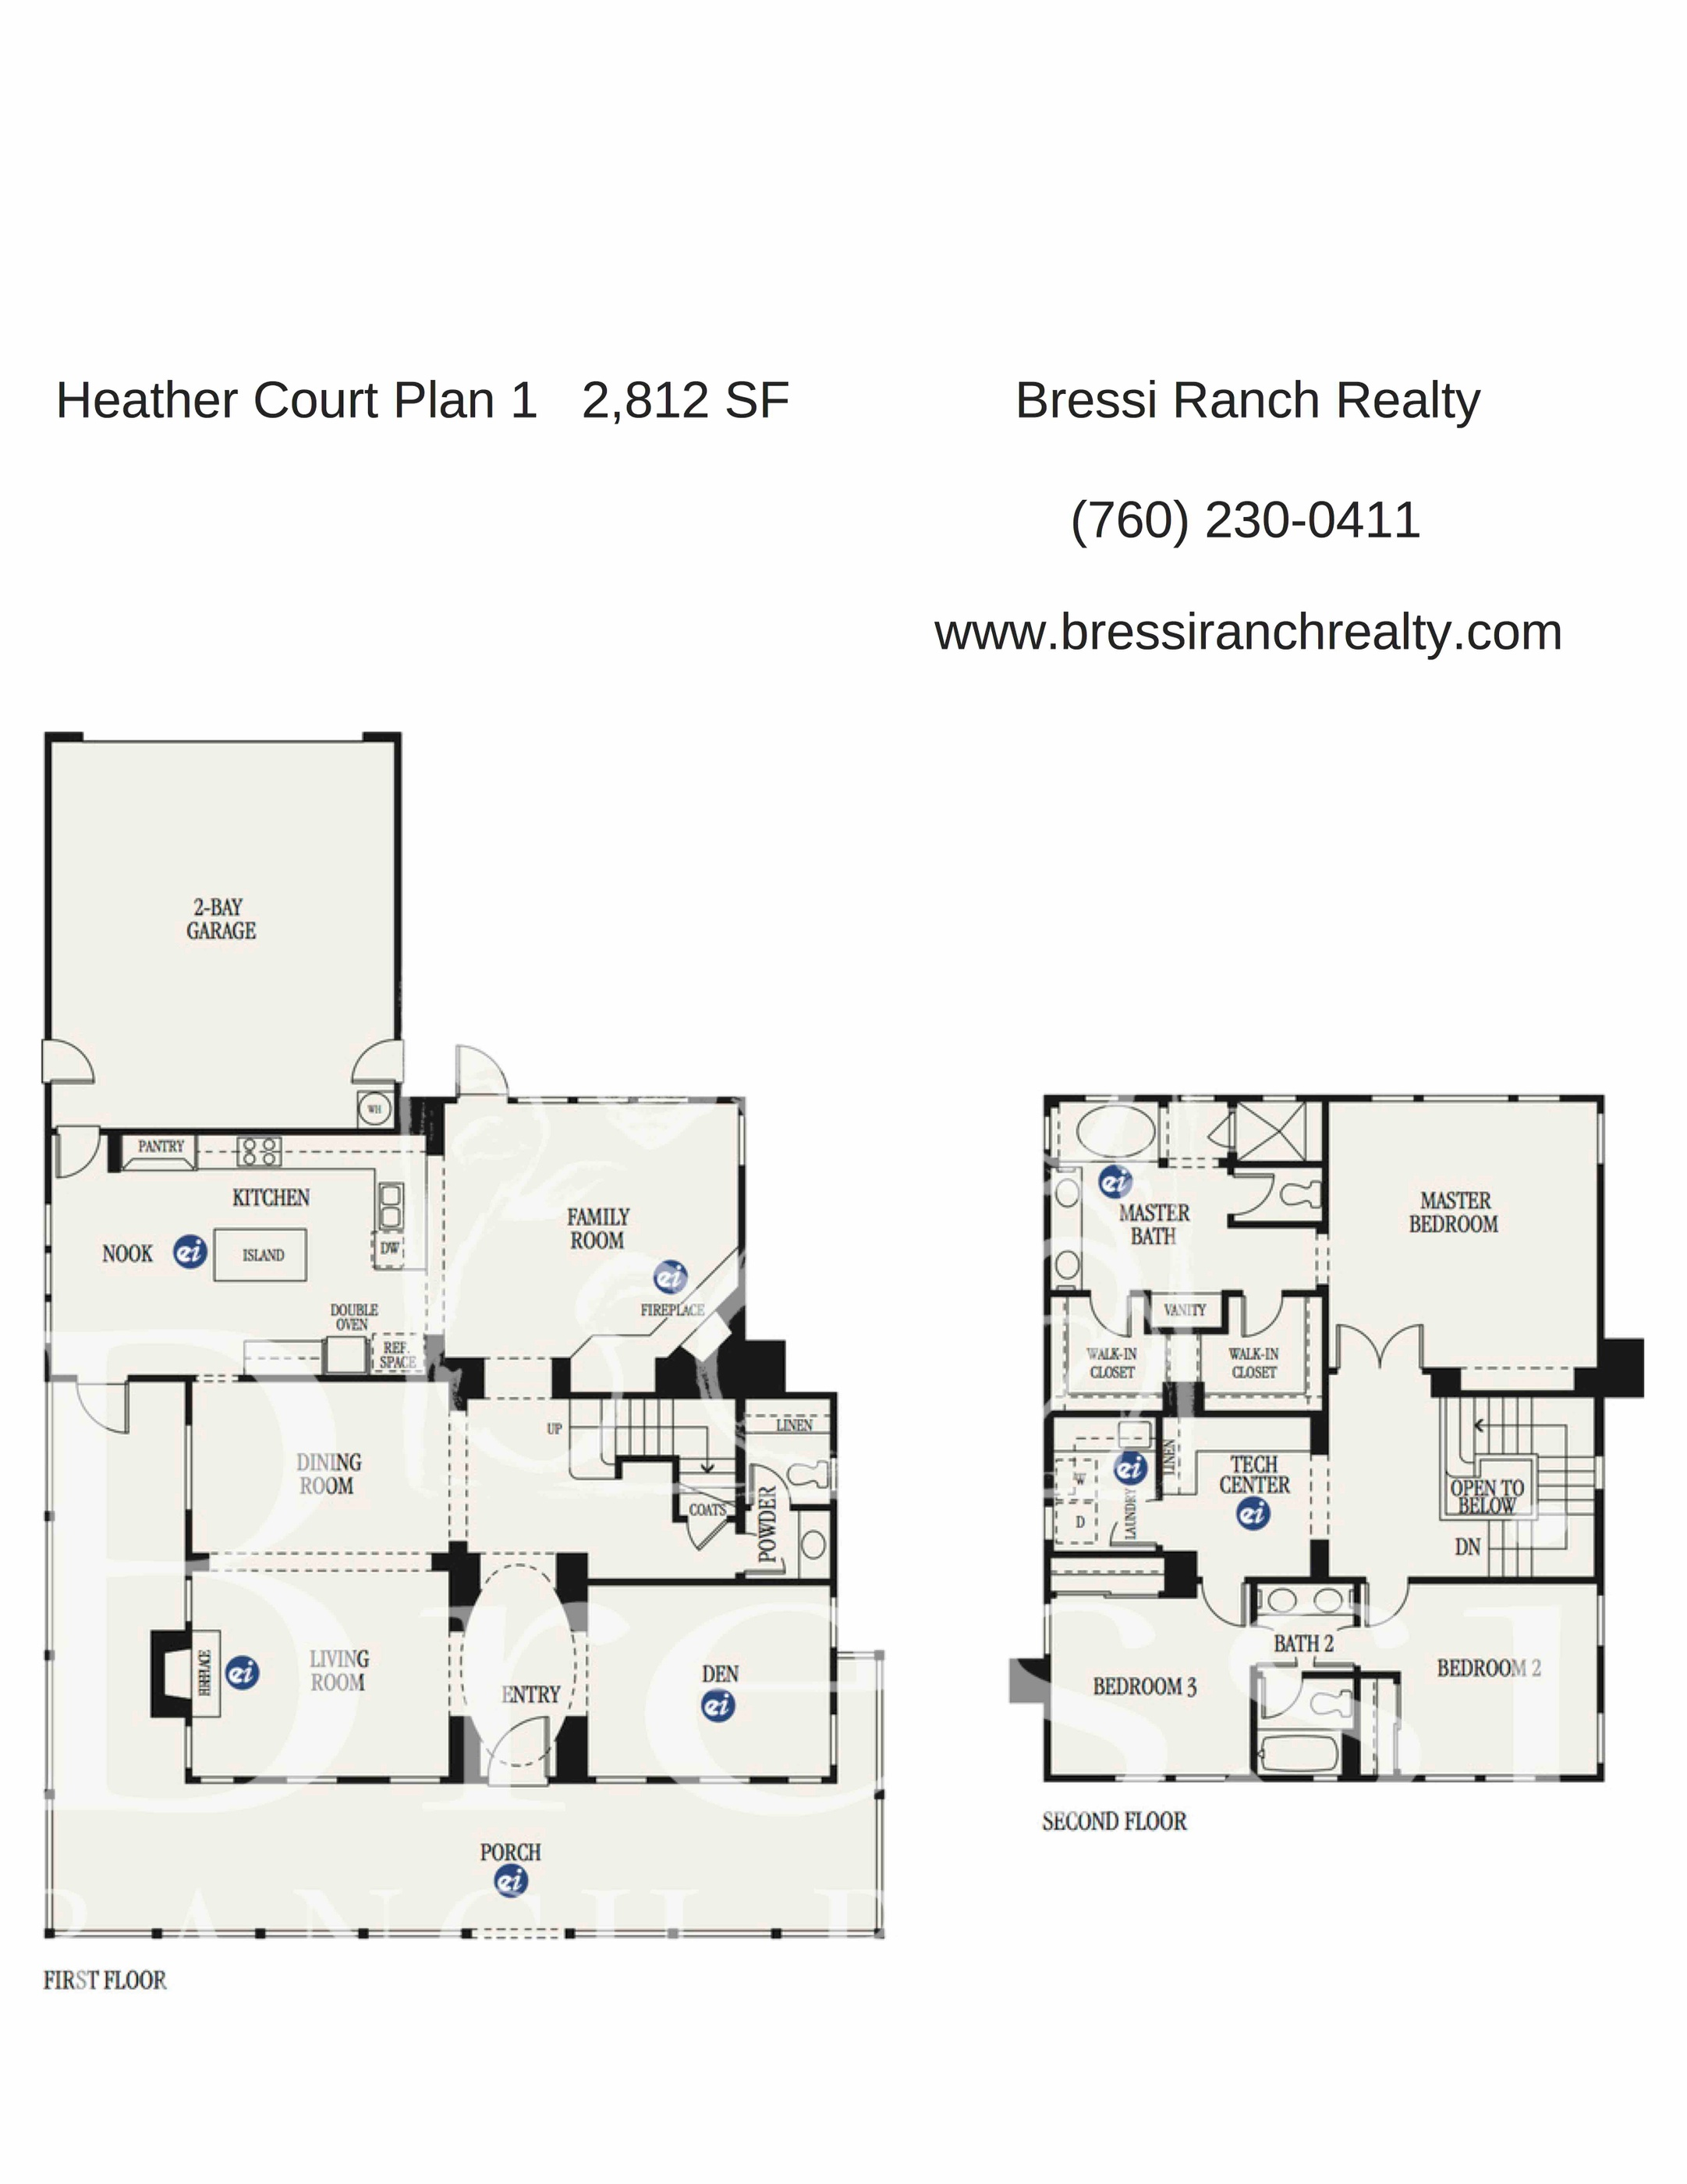 Heather Court Plan 1 Bressi Ranch